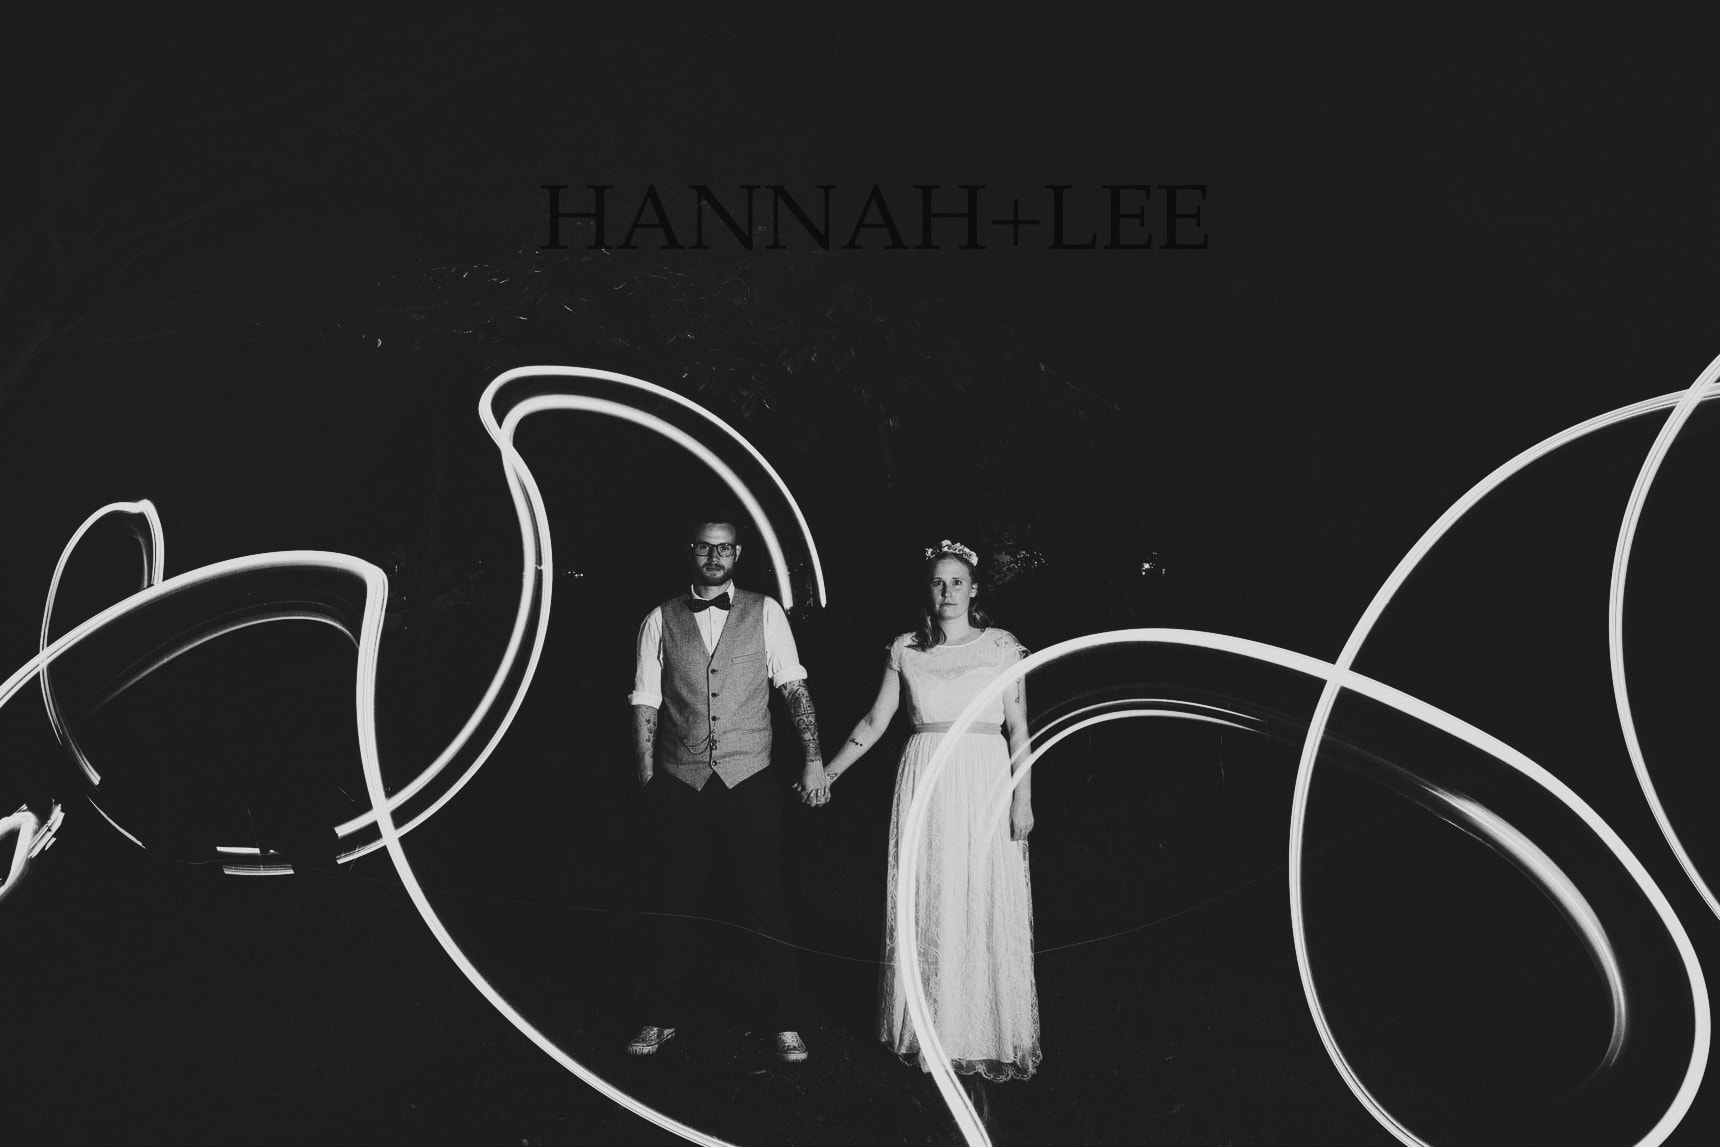 hannah-lee-wedding